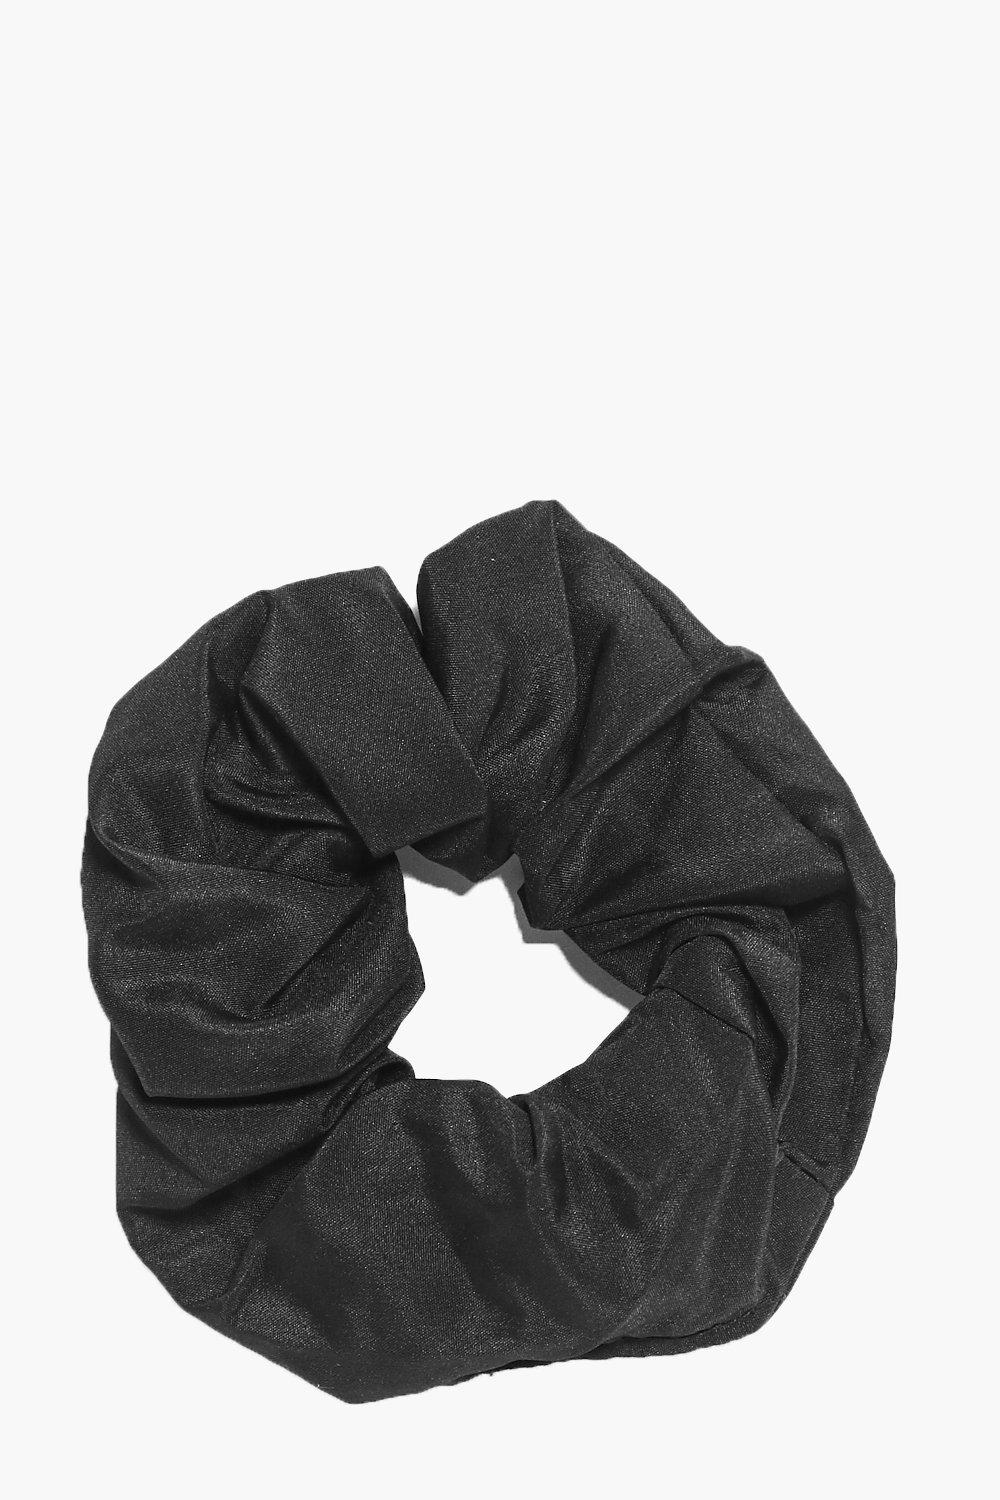 Plain Scrunchie - black - Jemima Plain Scrunchie -